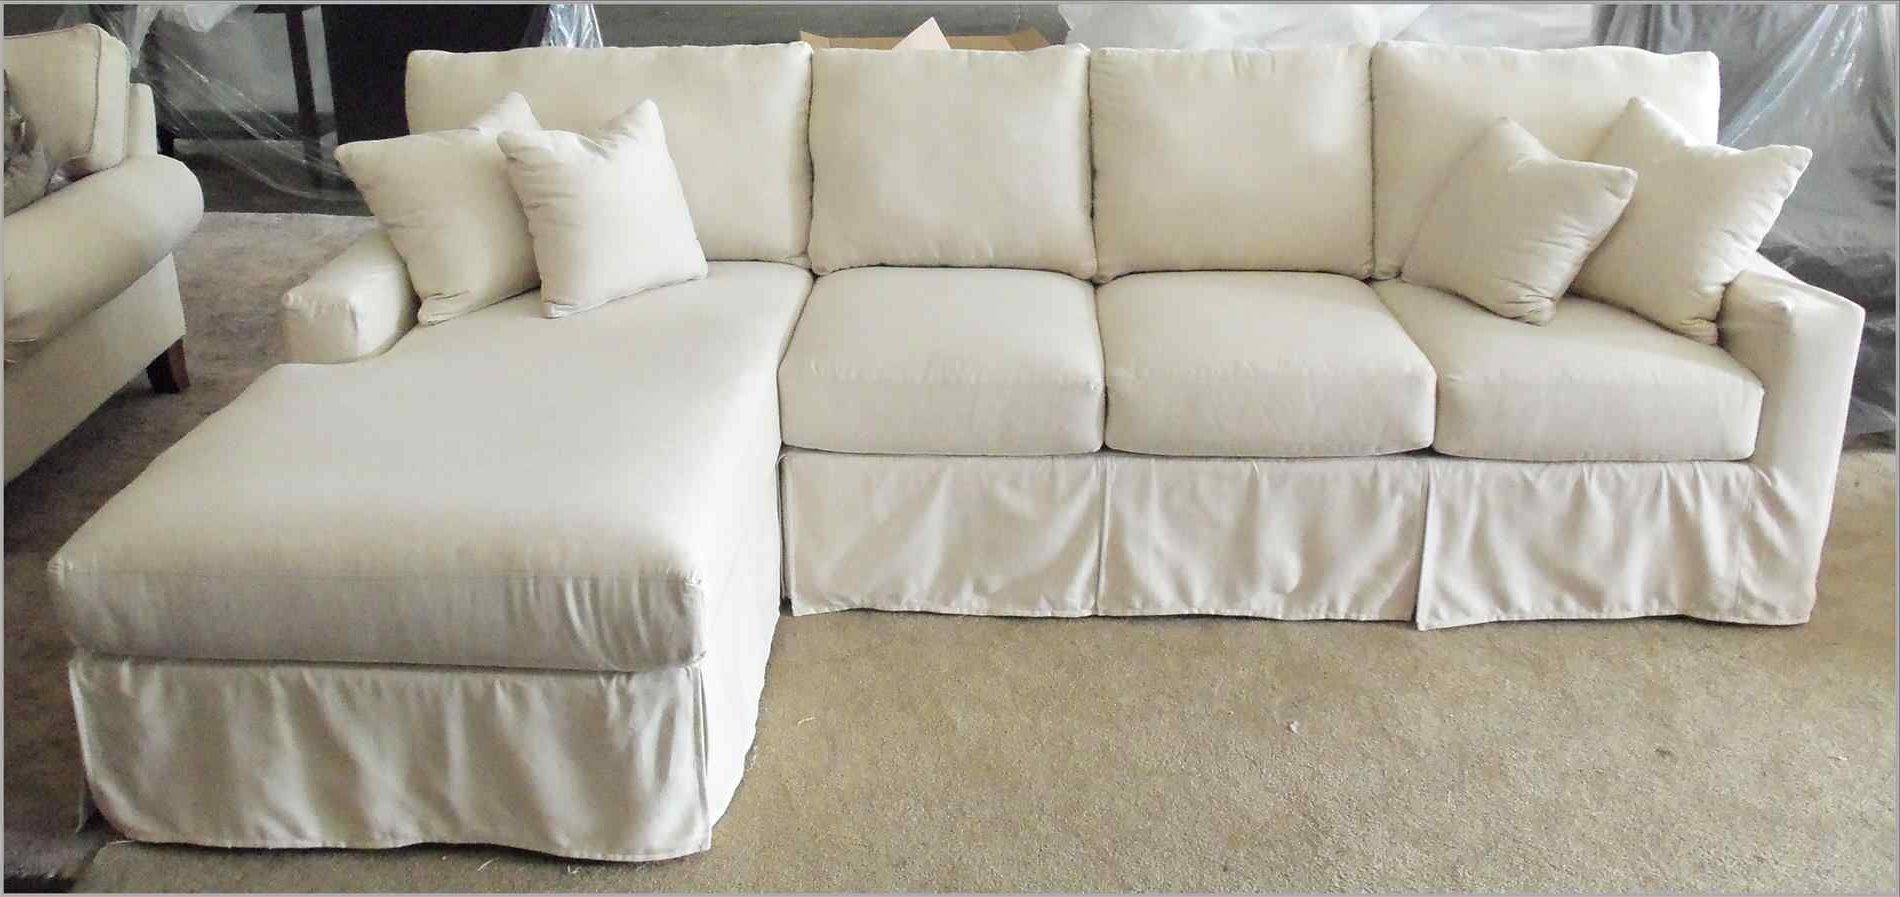 Slipcovers For Sectional Sofa With Chaise Within Latest Sofa With Chaise Slipcover – Amazing Furniture, Interior And Home (View 5 of 15)